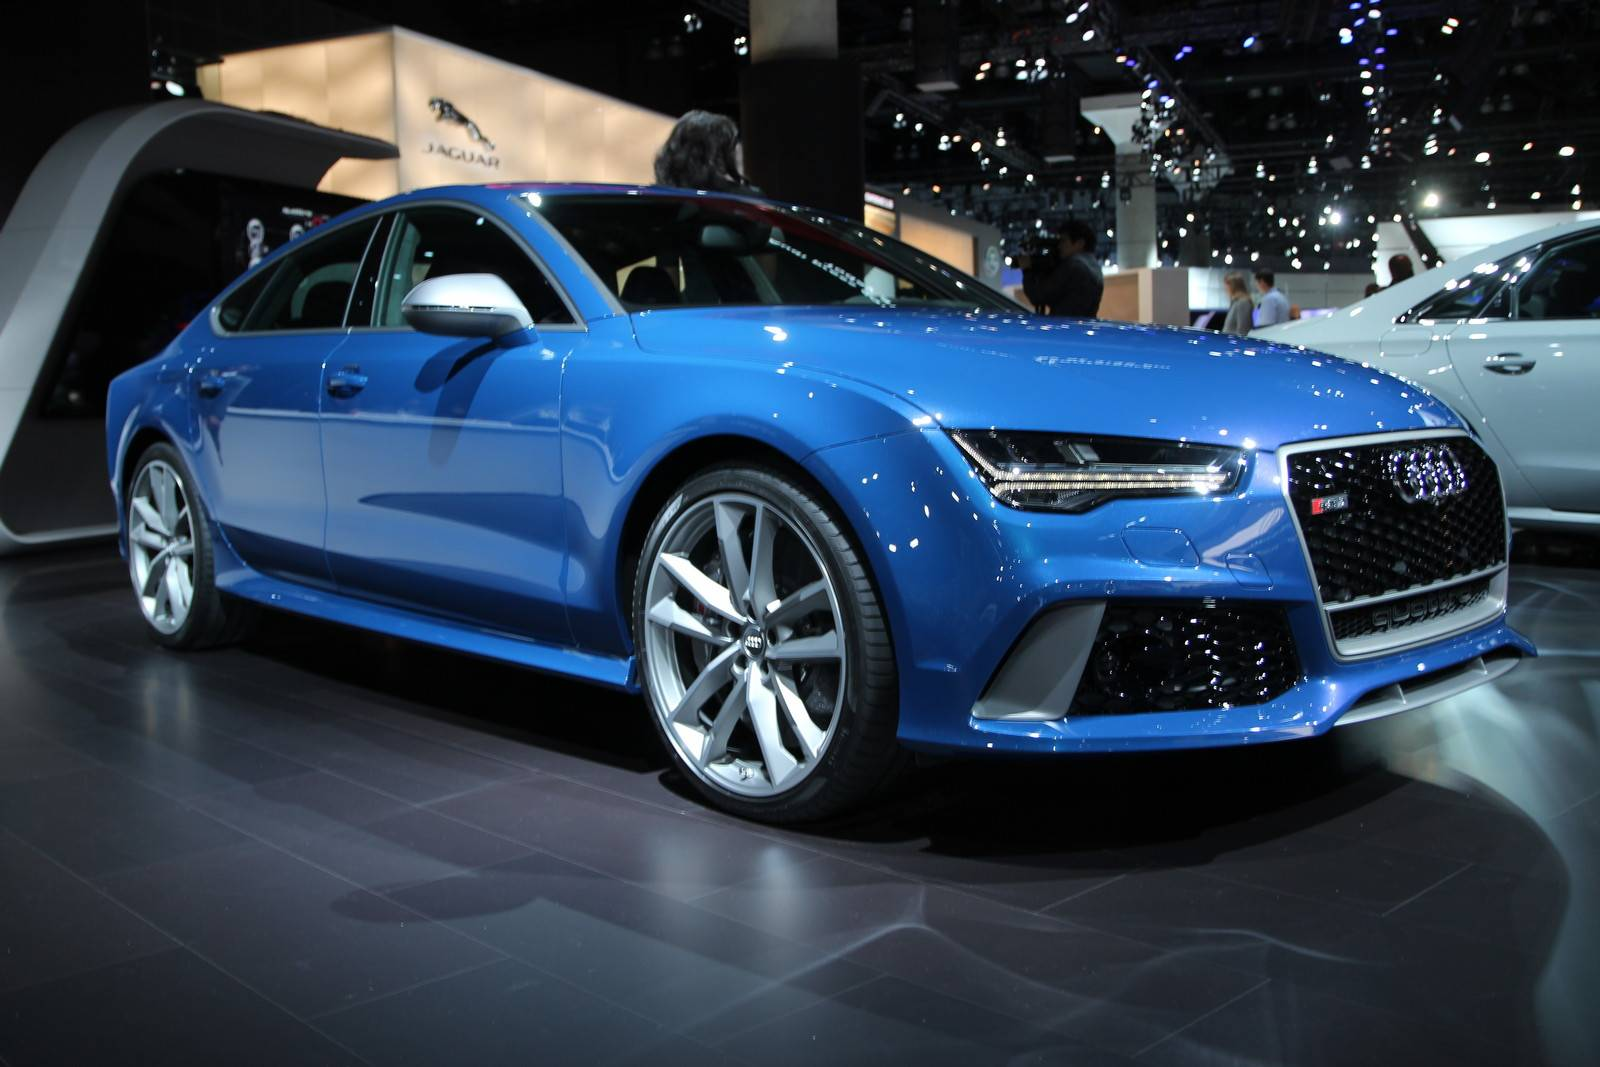 Welcome 2016 Audi Rs7 Performance In The Rs Family Engine Diagrams Finally Here Is A List Of All S And Models By